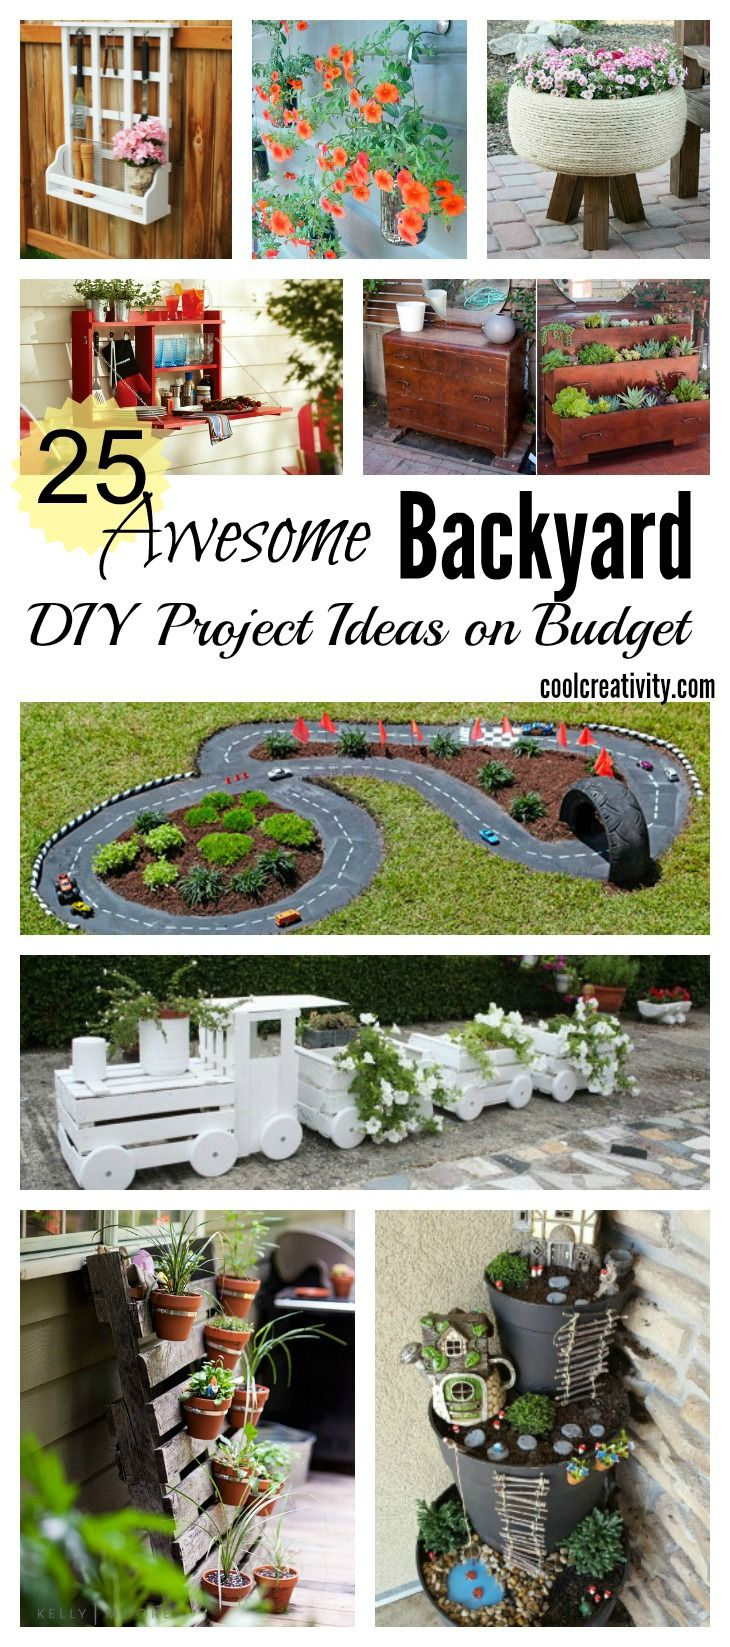 Outdoor Craft Ideas Gardens Part - 30: 25 Awesome Backyard DIY Project Ideas On Budget